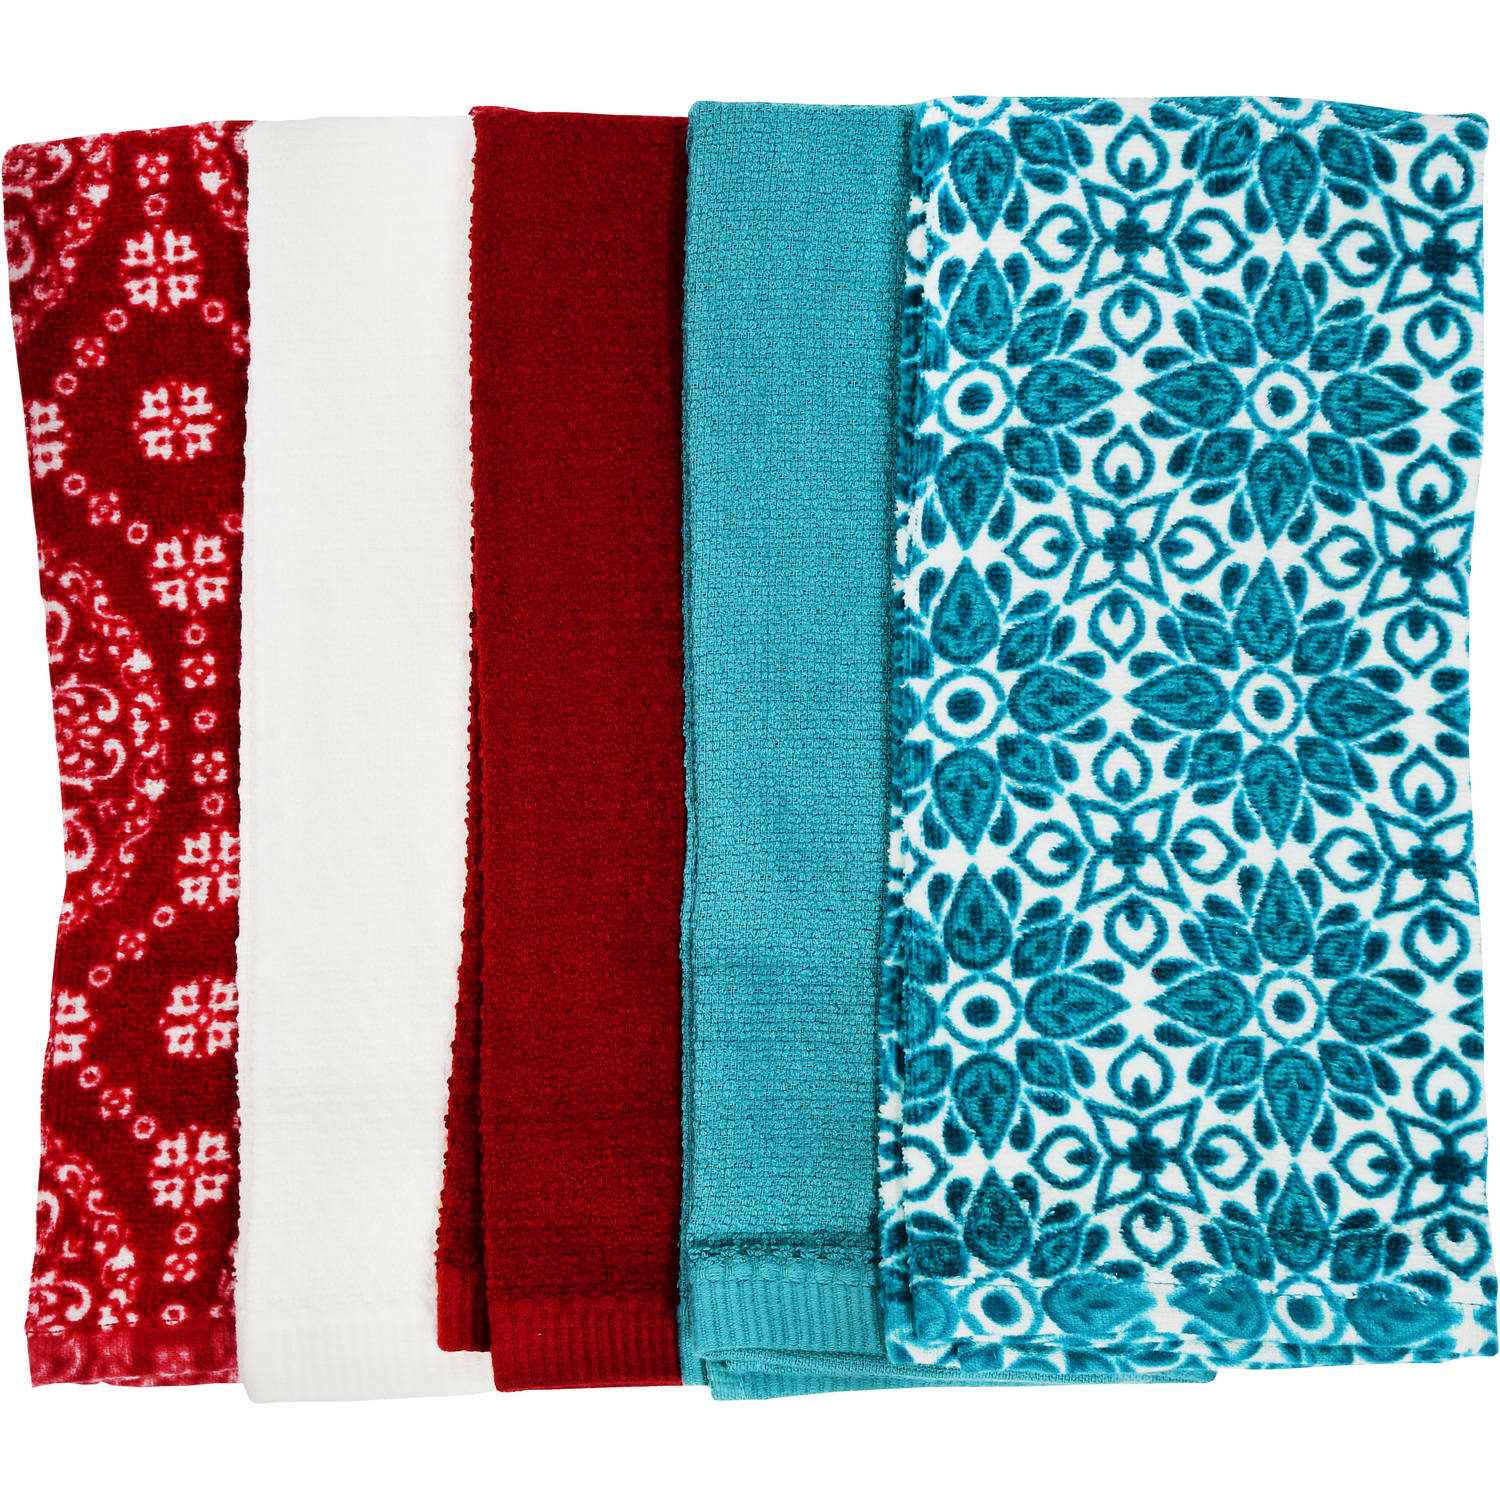 MAINSTAYS COTTON KITCHEN TOWEL 5 PACK